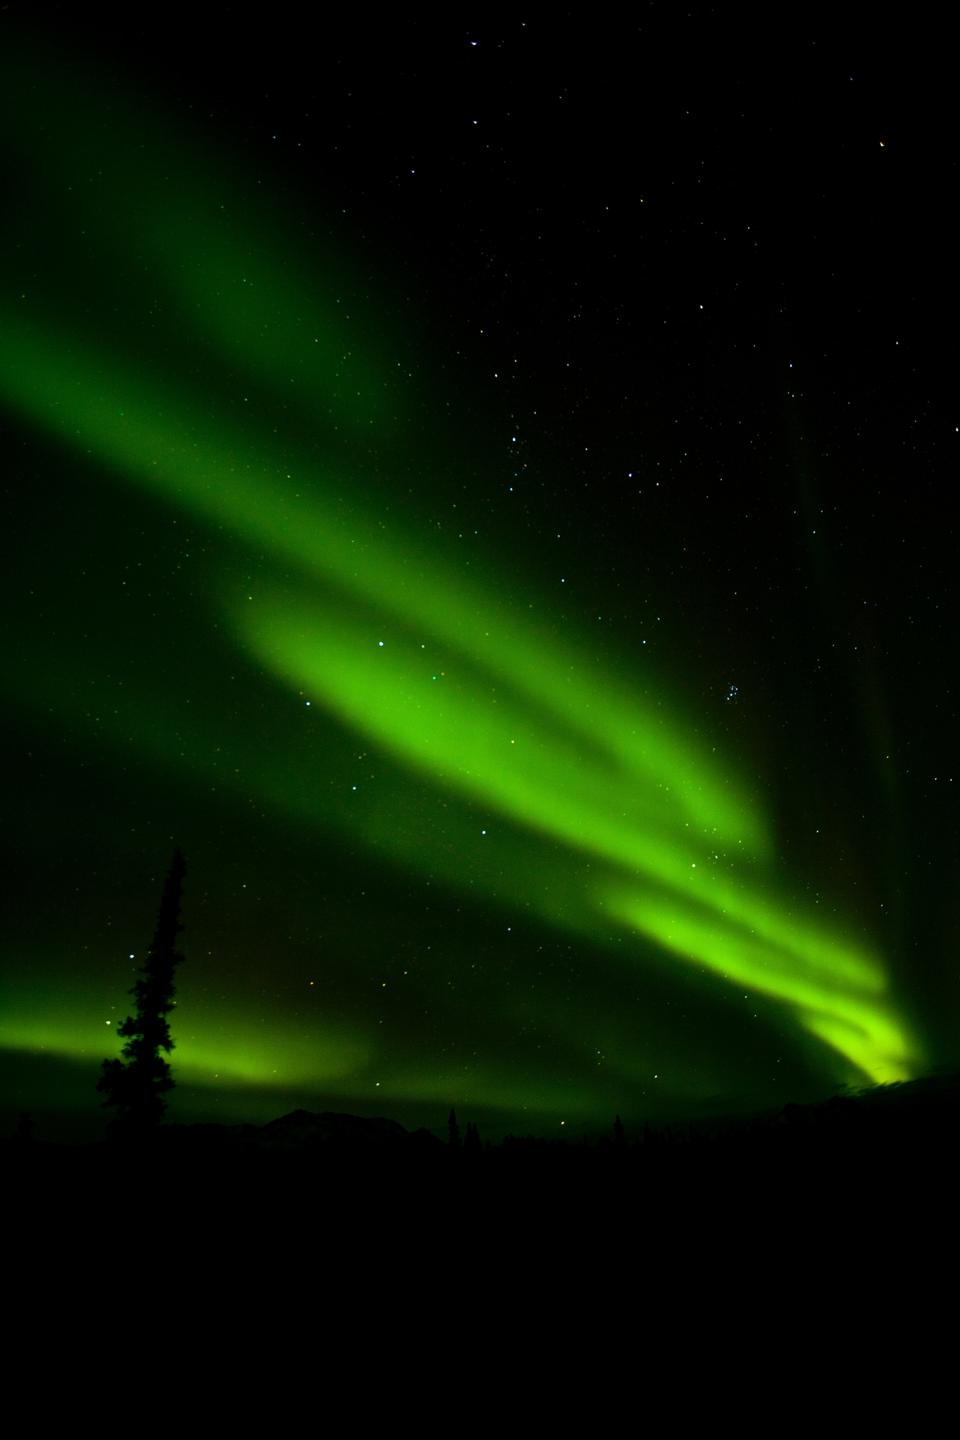 A large aurora display